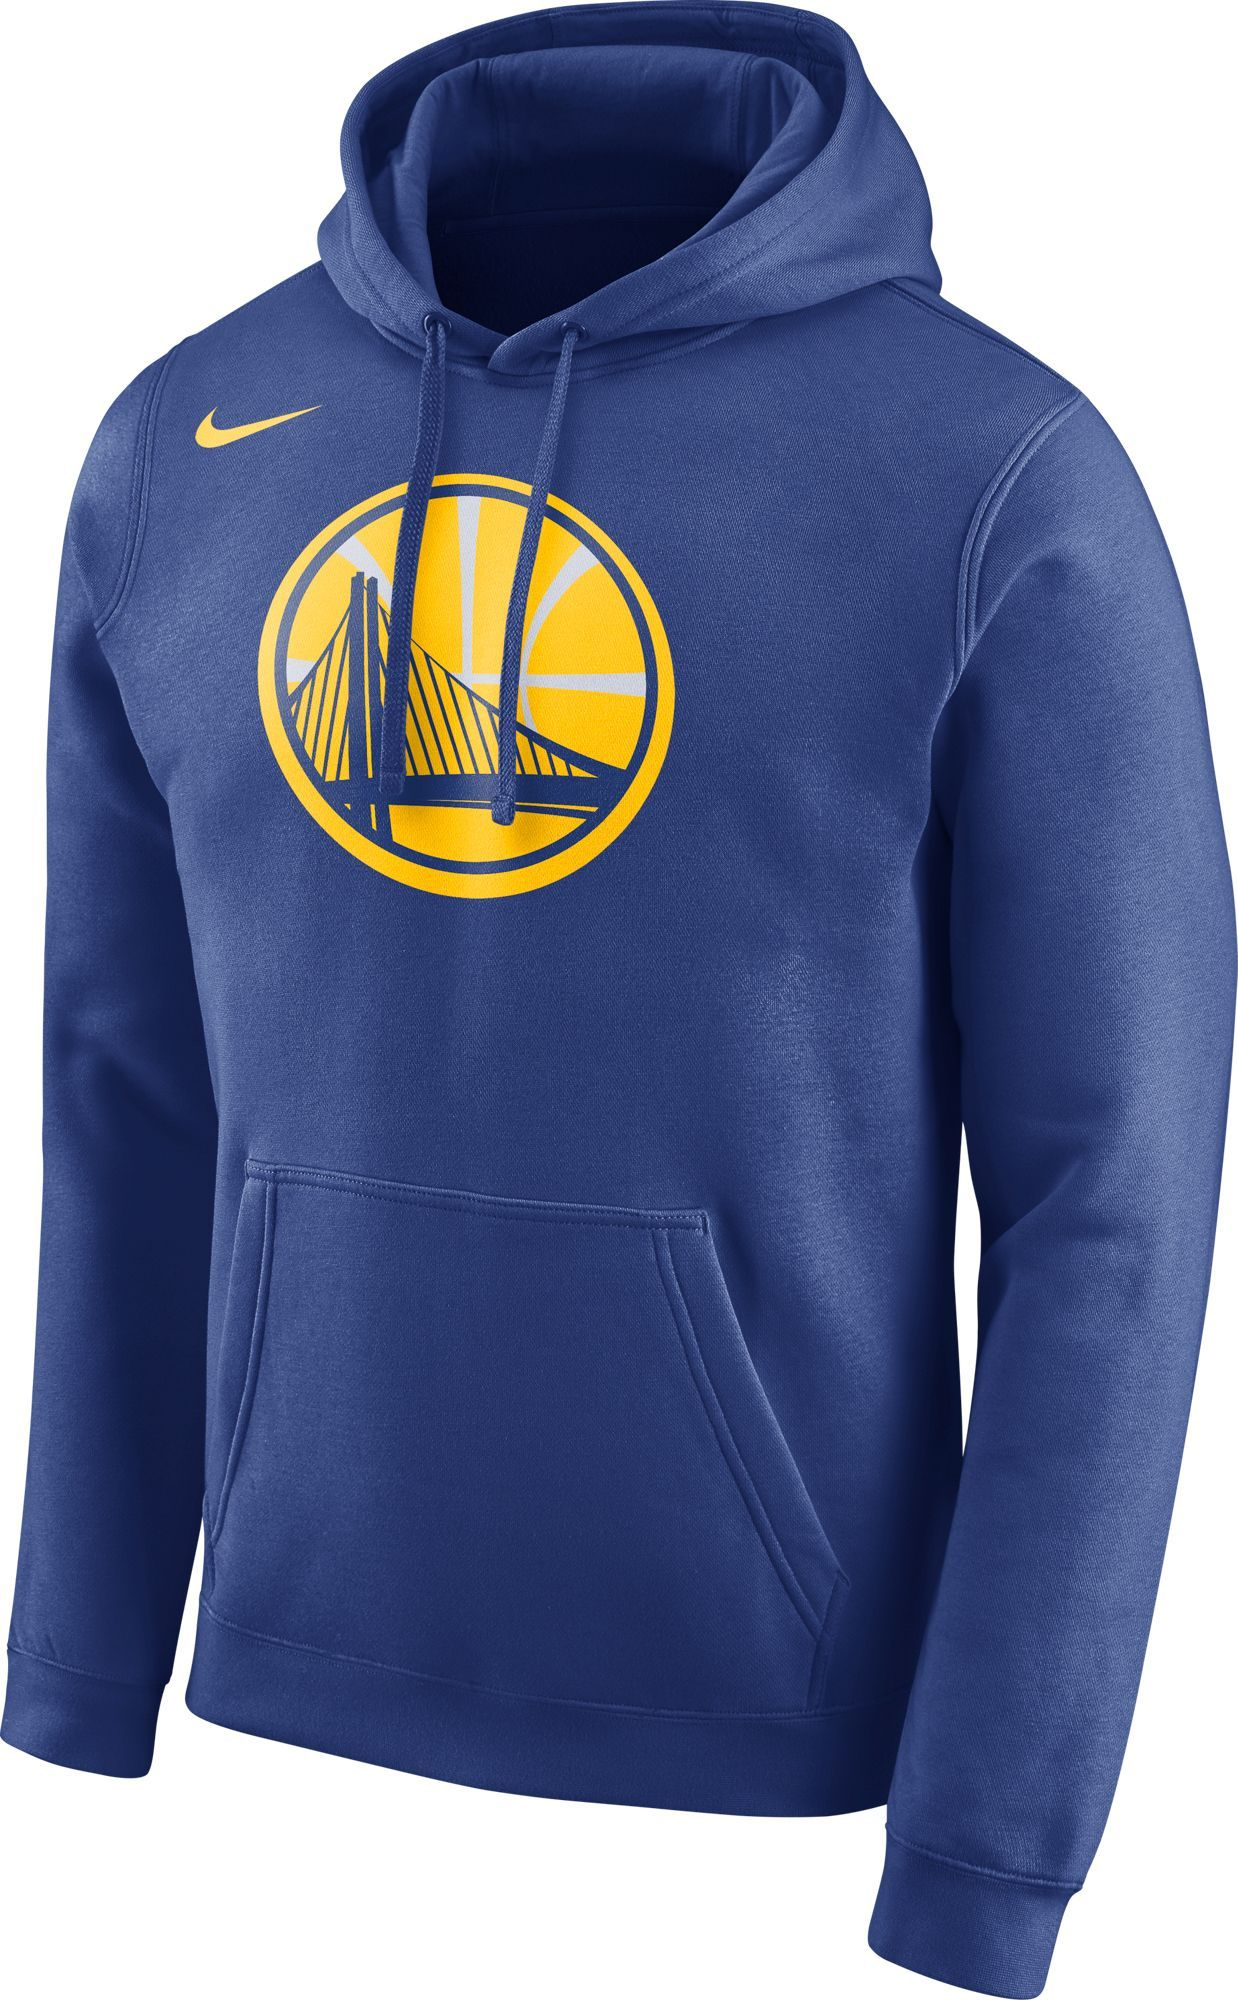 5046362dde5 Nike Men s Golden State Warriors Club Royal Pullover Hoodie ...